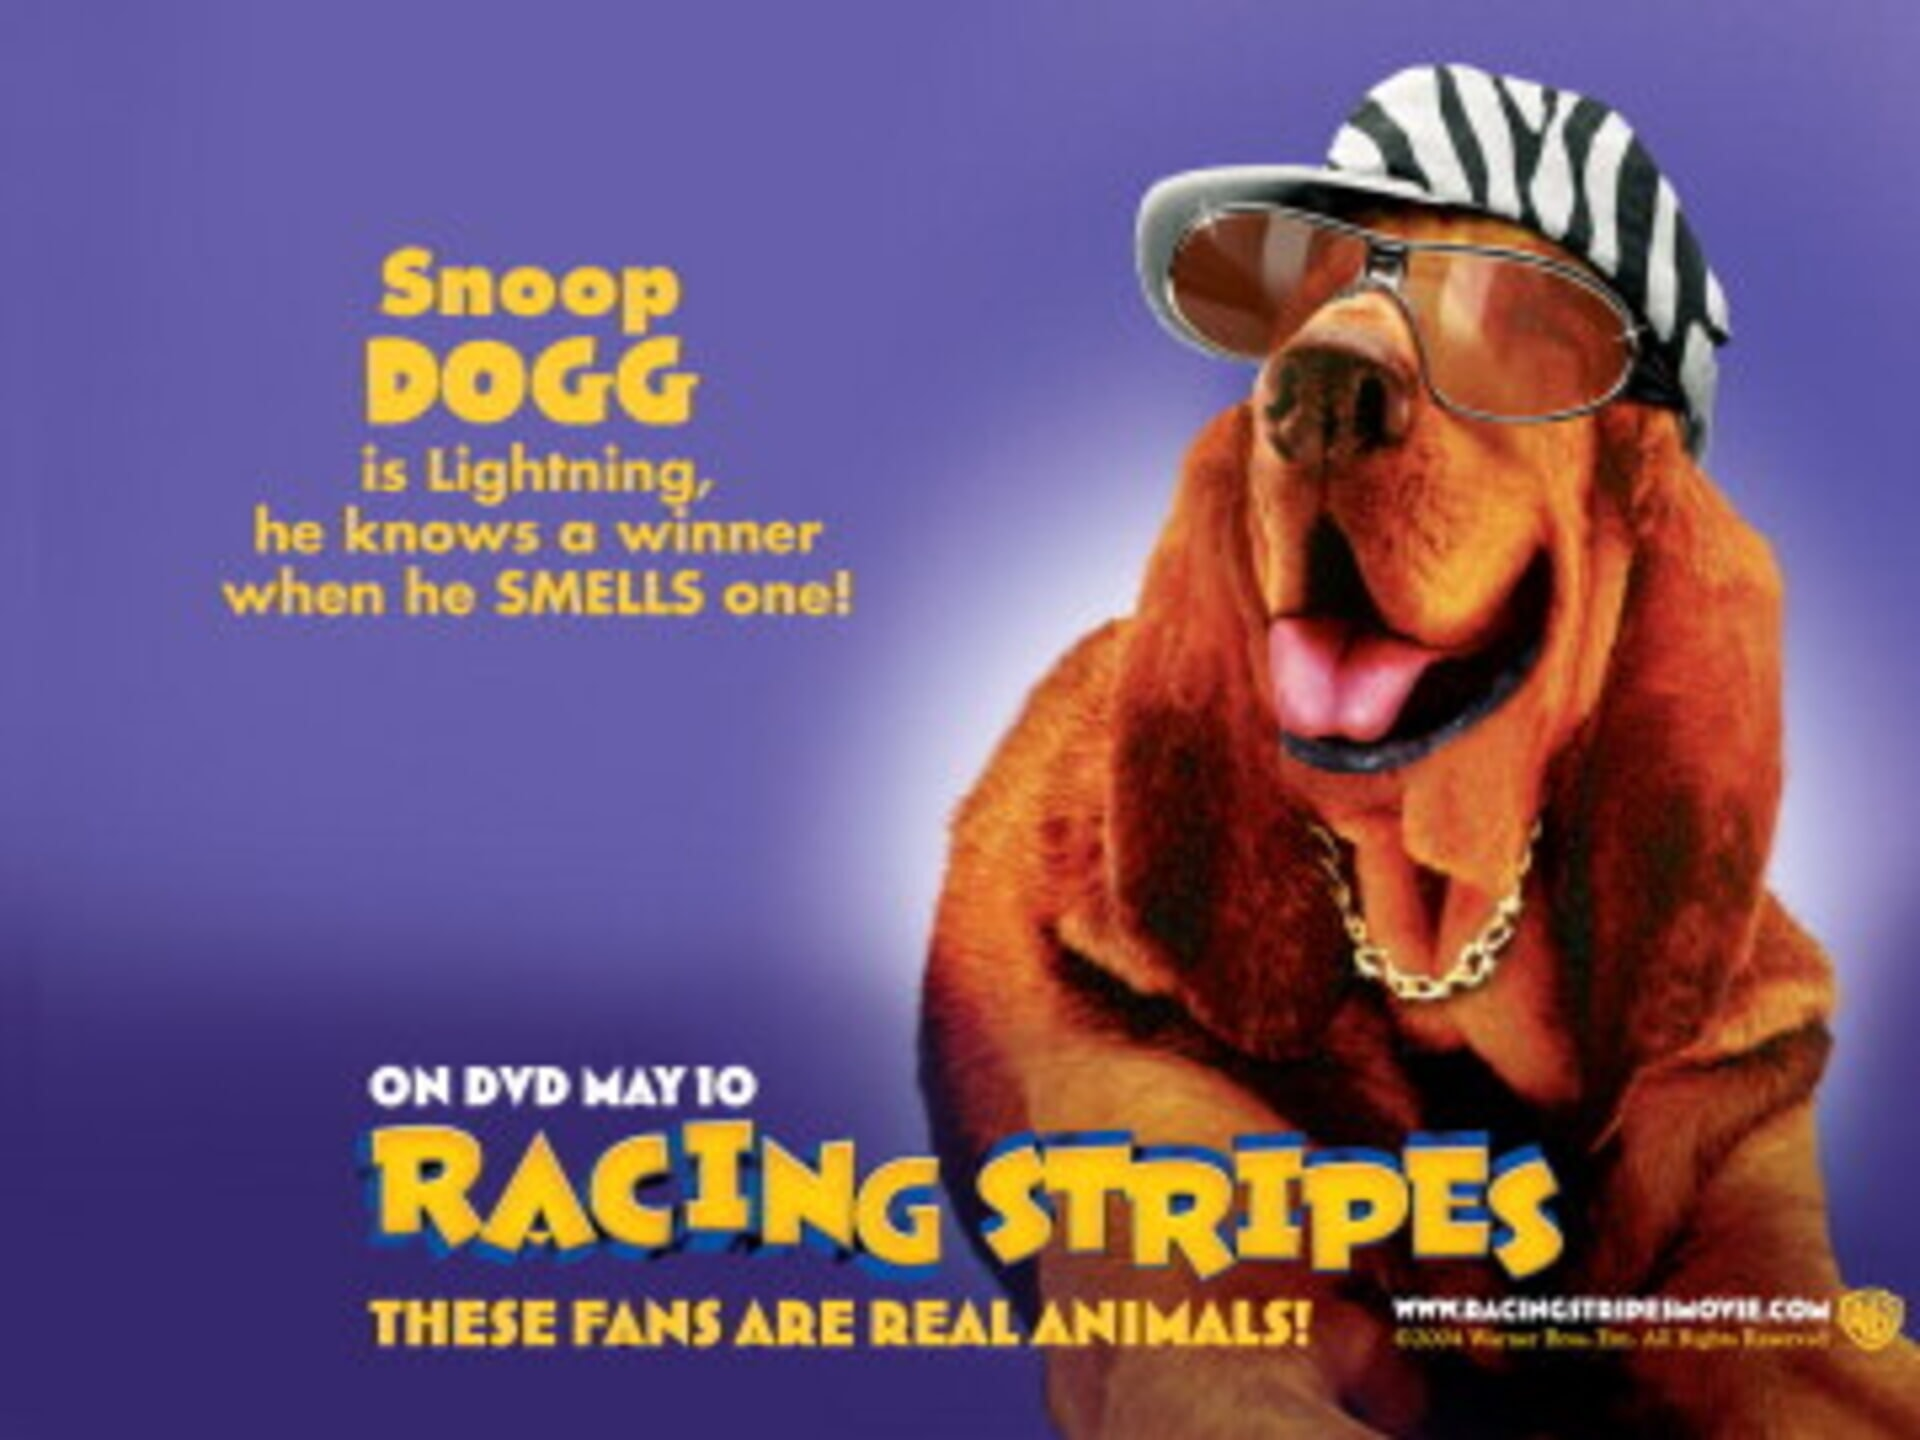 Racing Stripes - Image 72